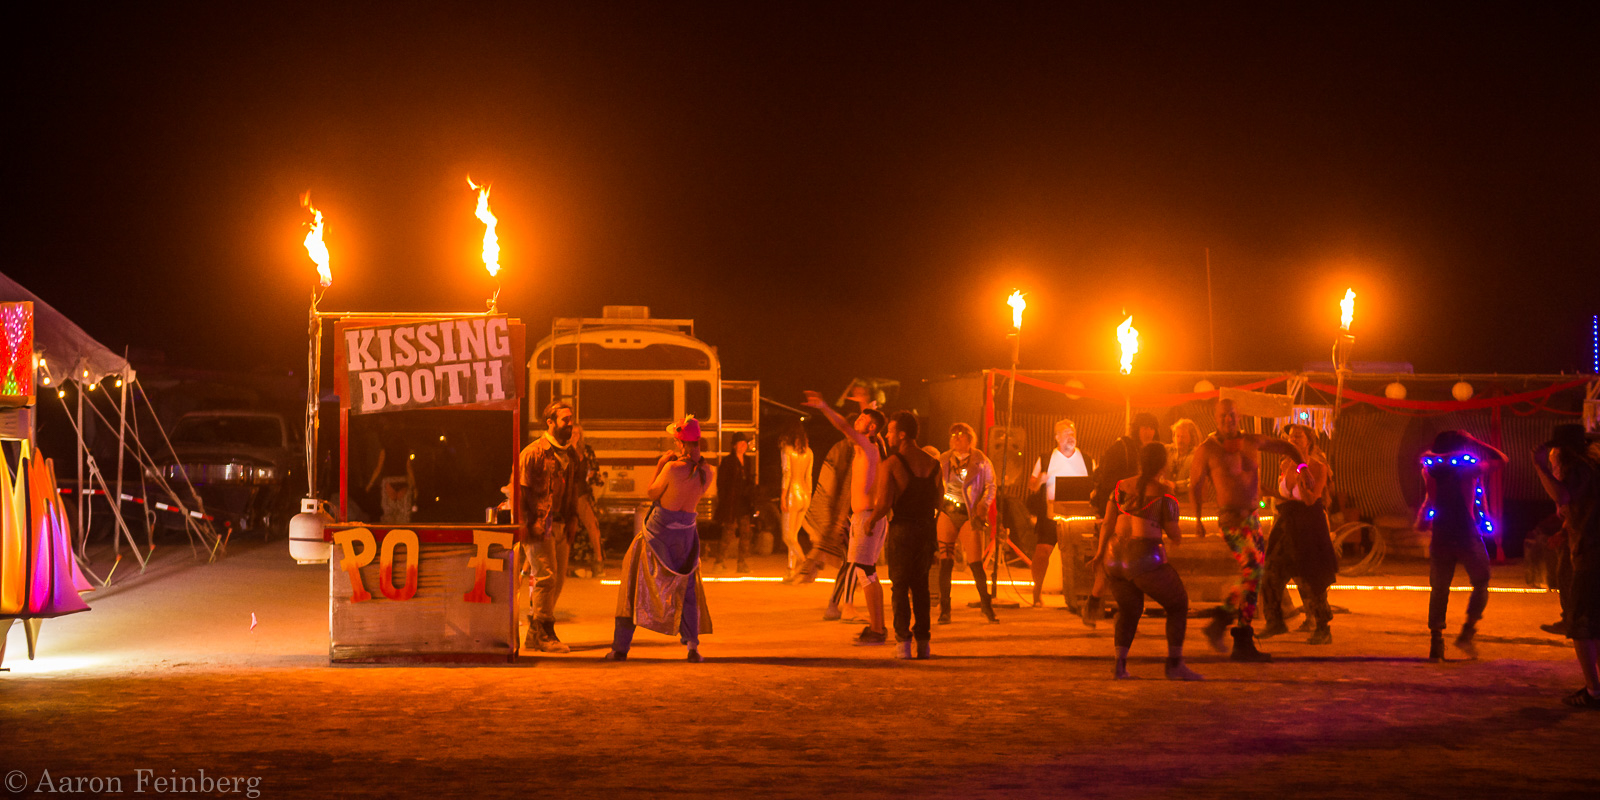 Aaron Feinberg, black rock city, brc, burning man, burning man 2018, feinberg, festival, in dust we trust, irobot, playa, photo